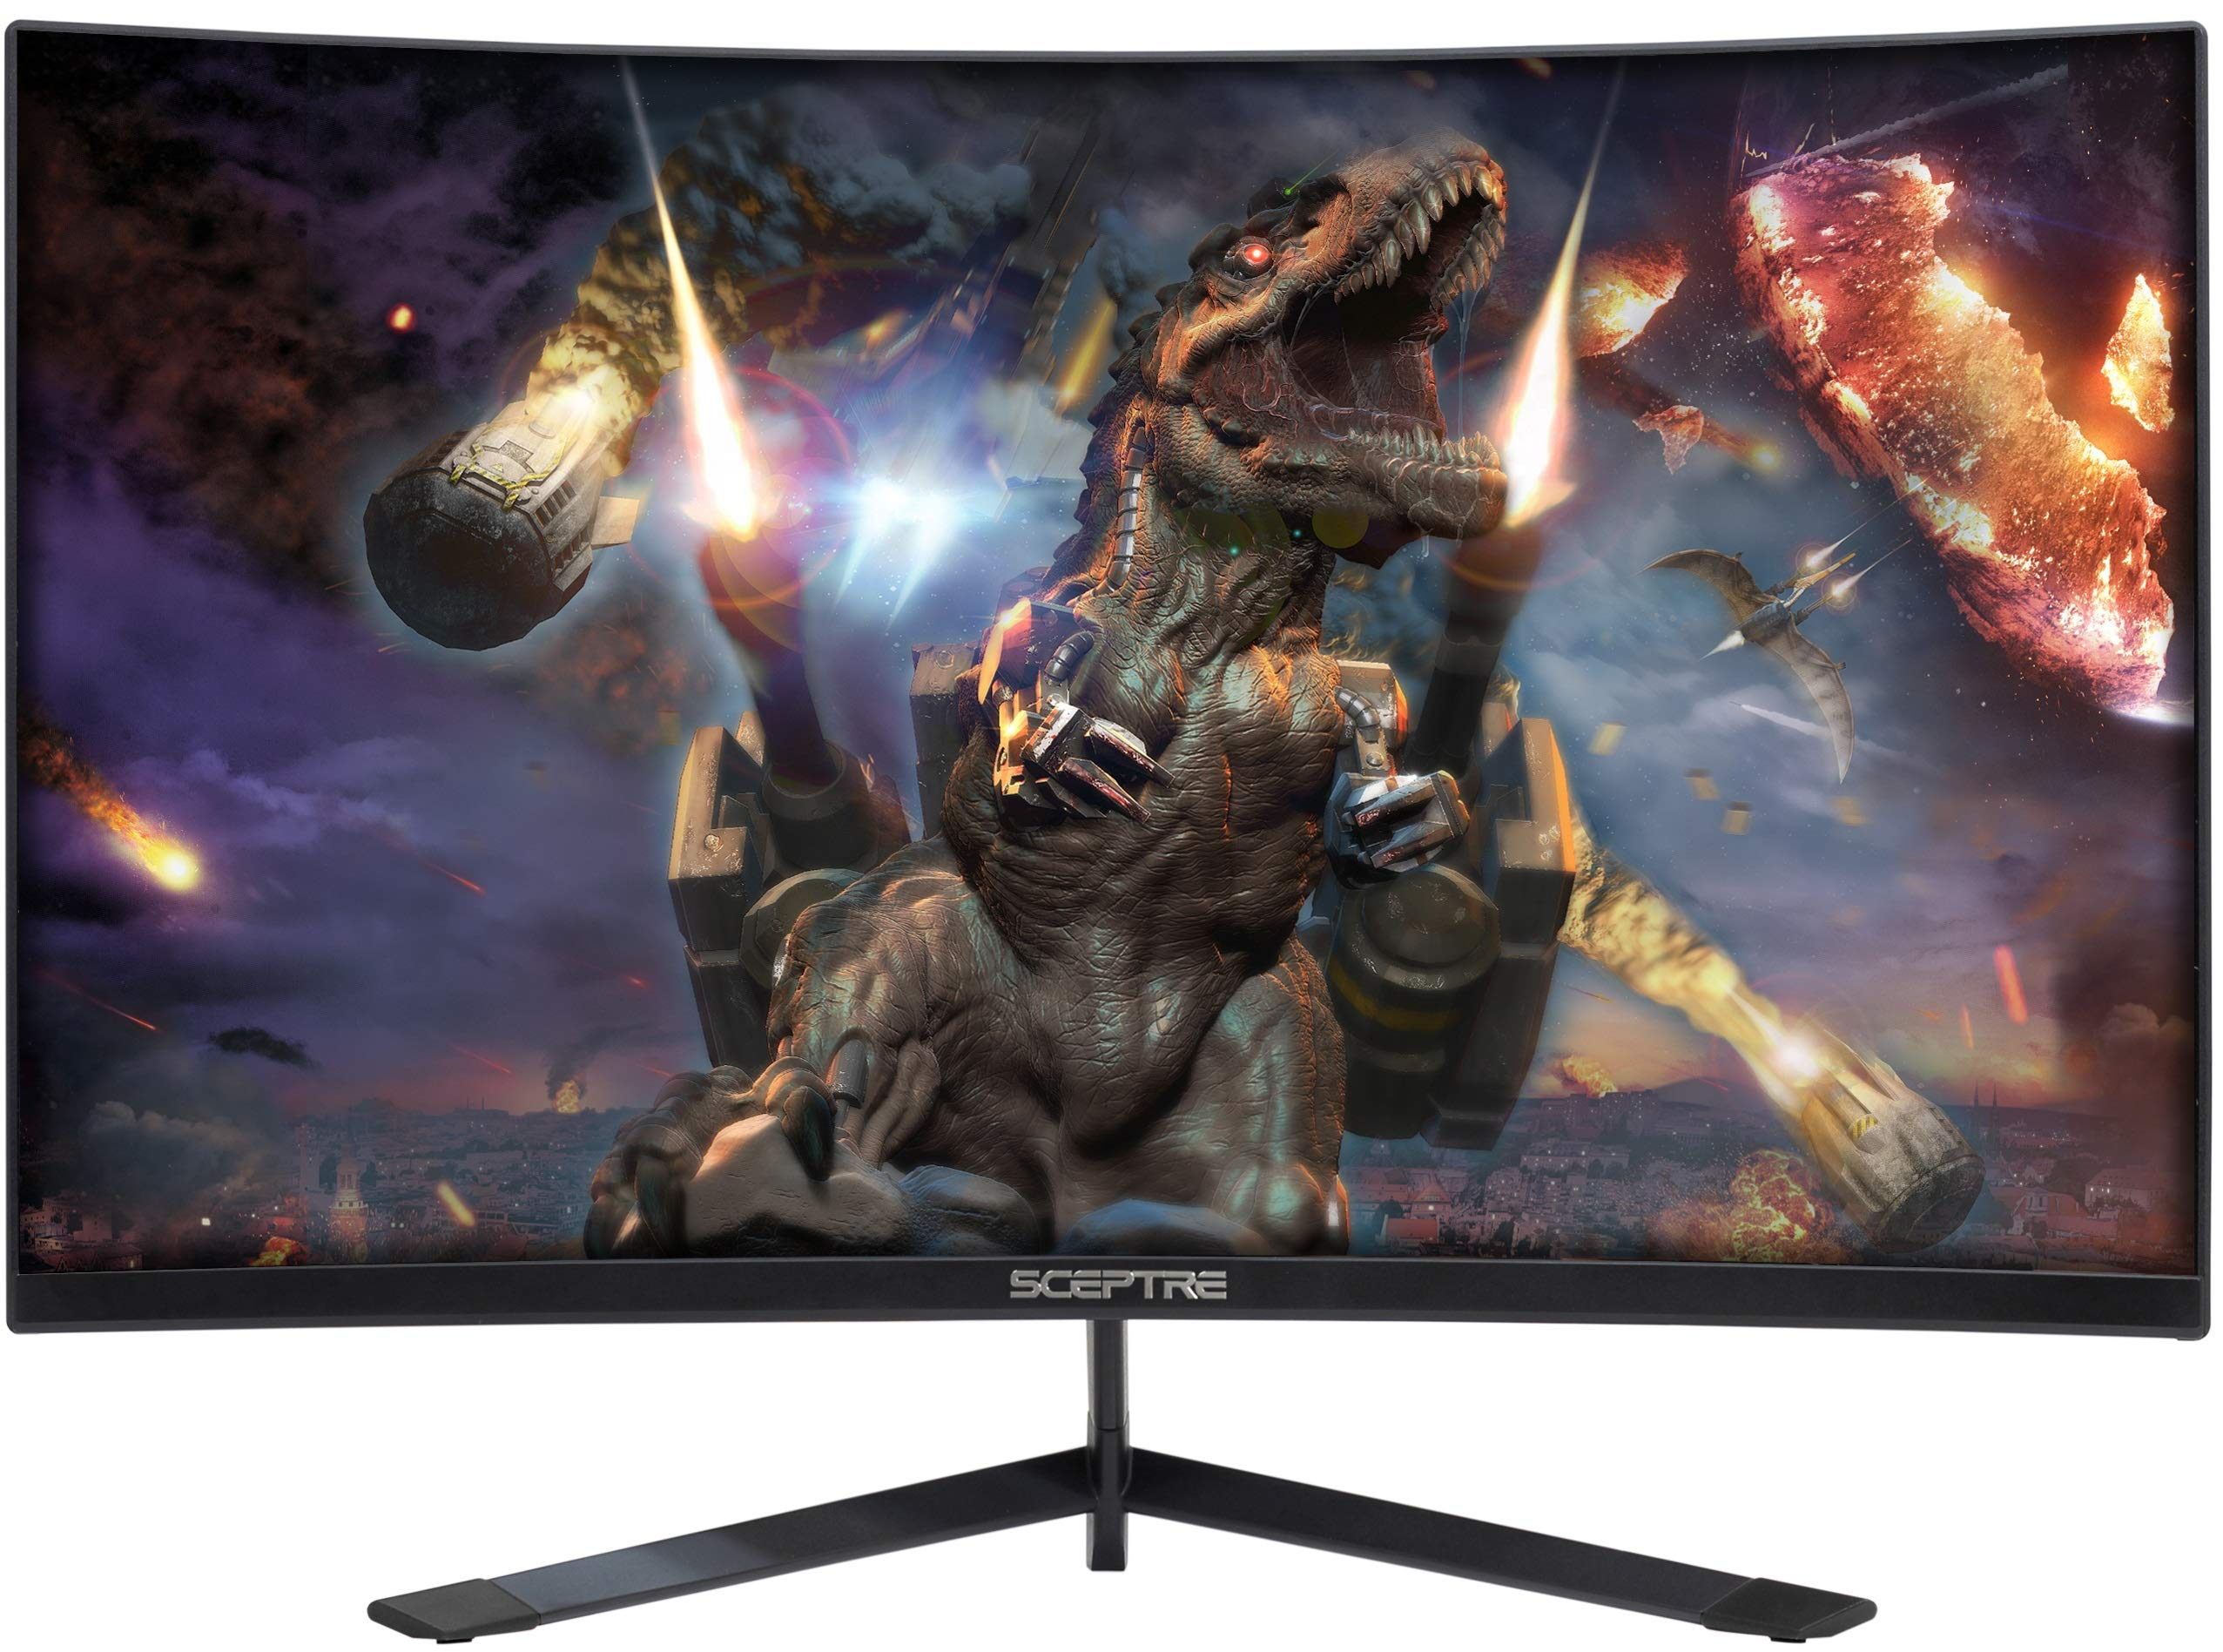 Sceptre 24'' Curved 144Hz Gaming LED Monitor Edge-Less AMD FreeSync DisplayPort HDMI, Metal Black 2019 (C248B-144RN) by Sceptre